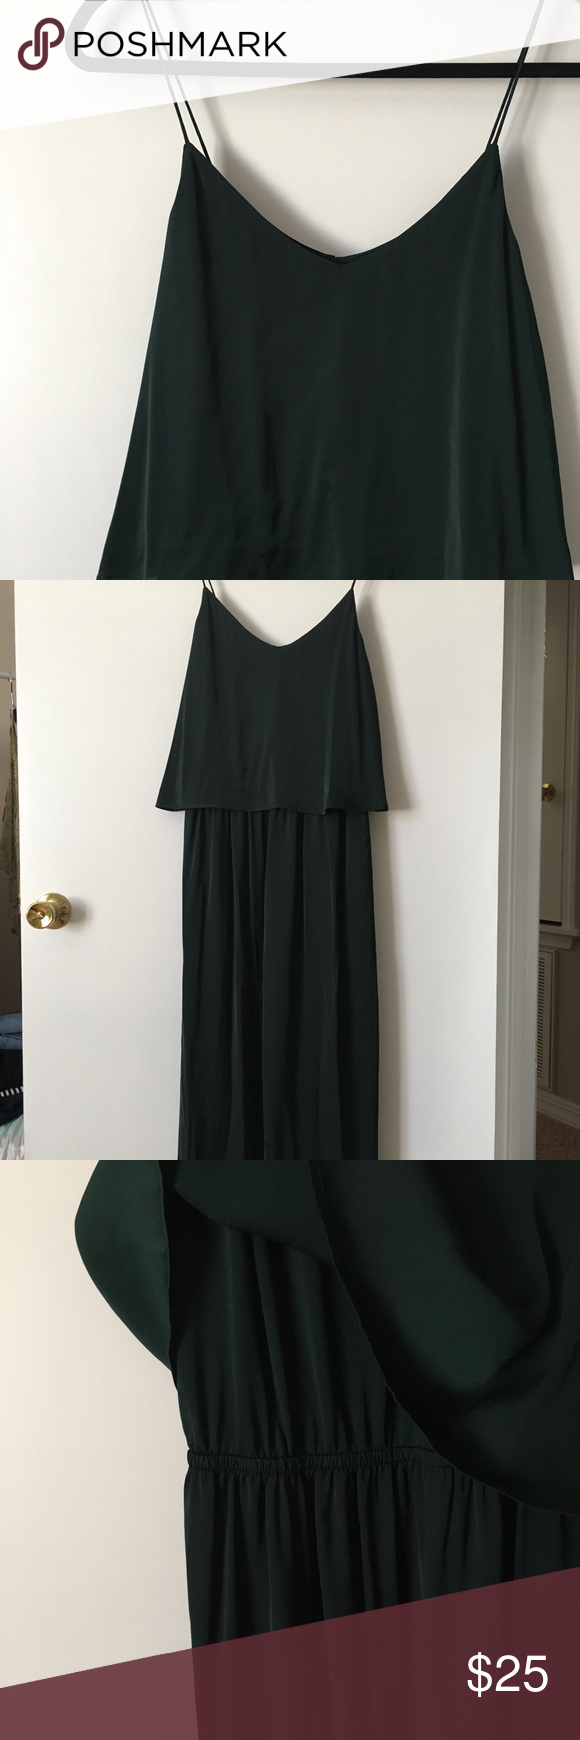 Emerald Green Maxi Dress H&M midi dress with ruffle top overlay. Waist underneath is gathered elastic. Back has a cutout. Dress is sleeveless with thin straps in the same fabric as the dress. Fabric is a great emerald green with a nice sheen. New with tags. Size 12. H&M Dresses Midi